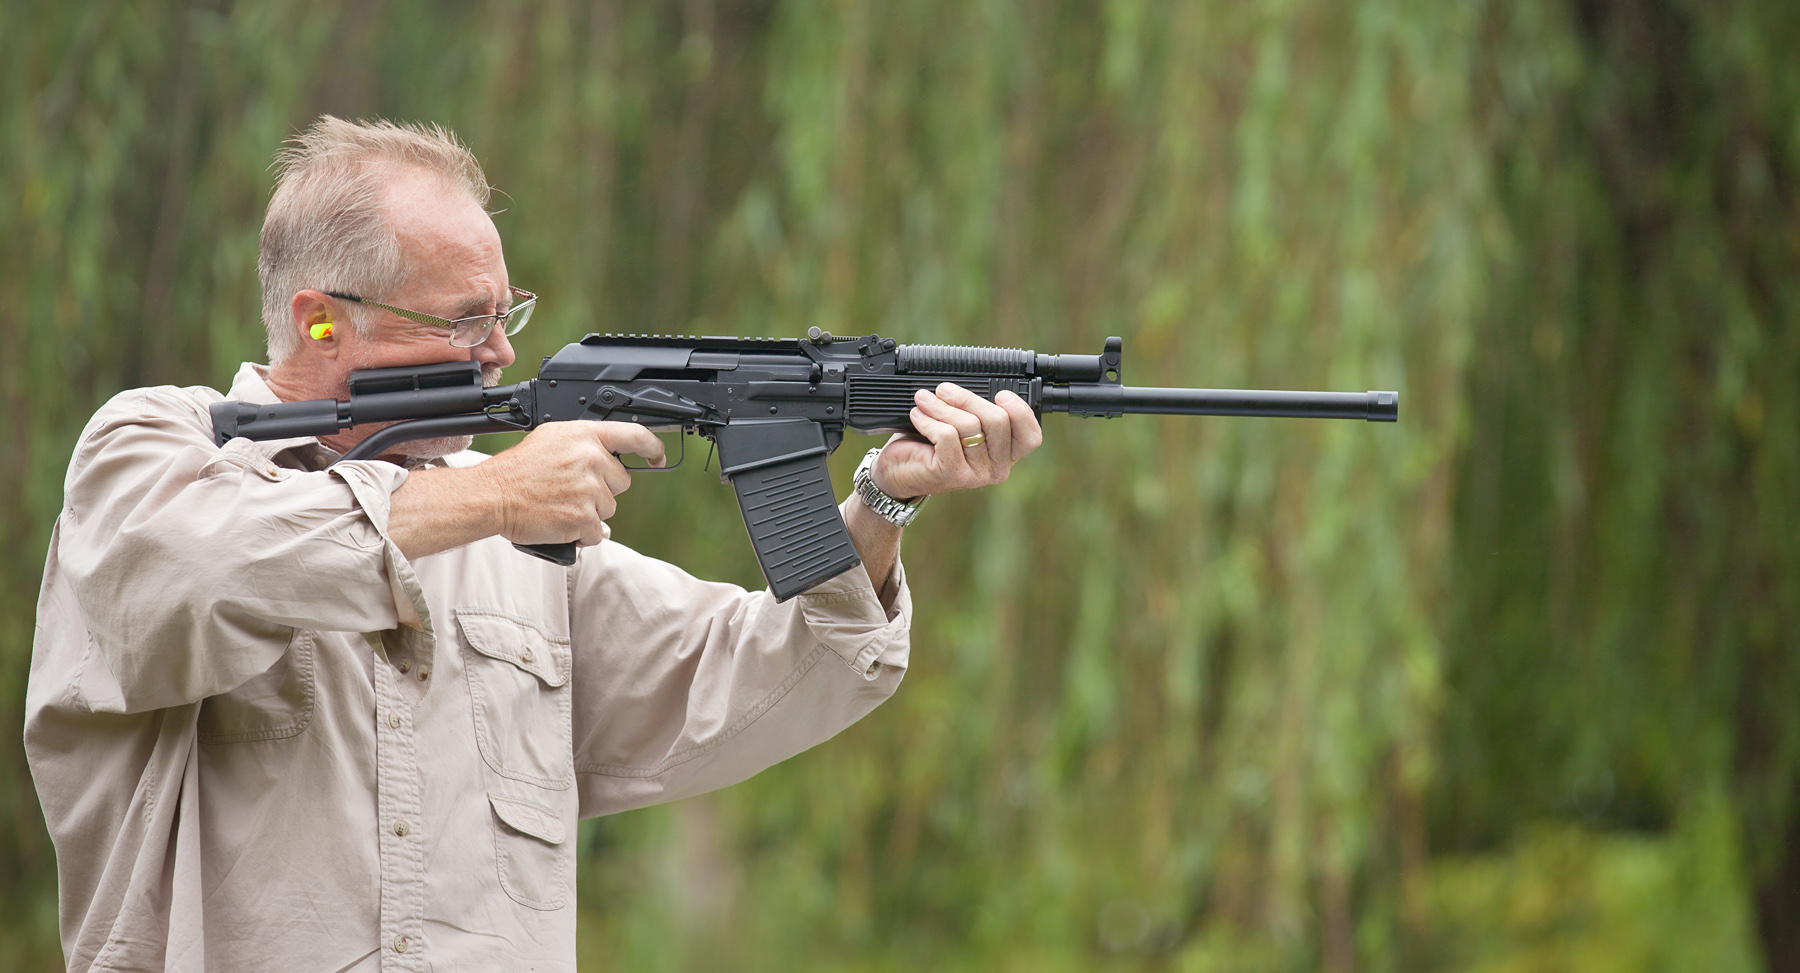 Vepr 12 First Impressions